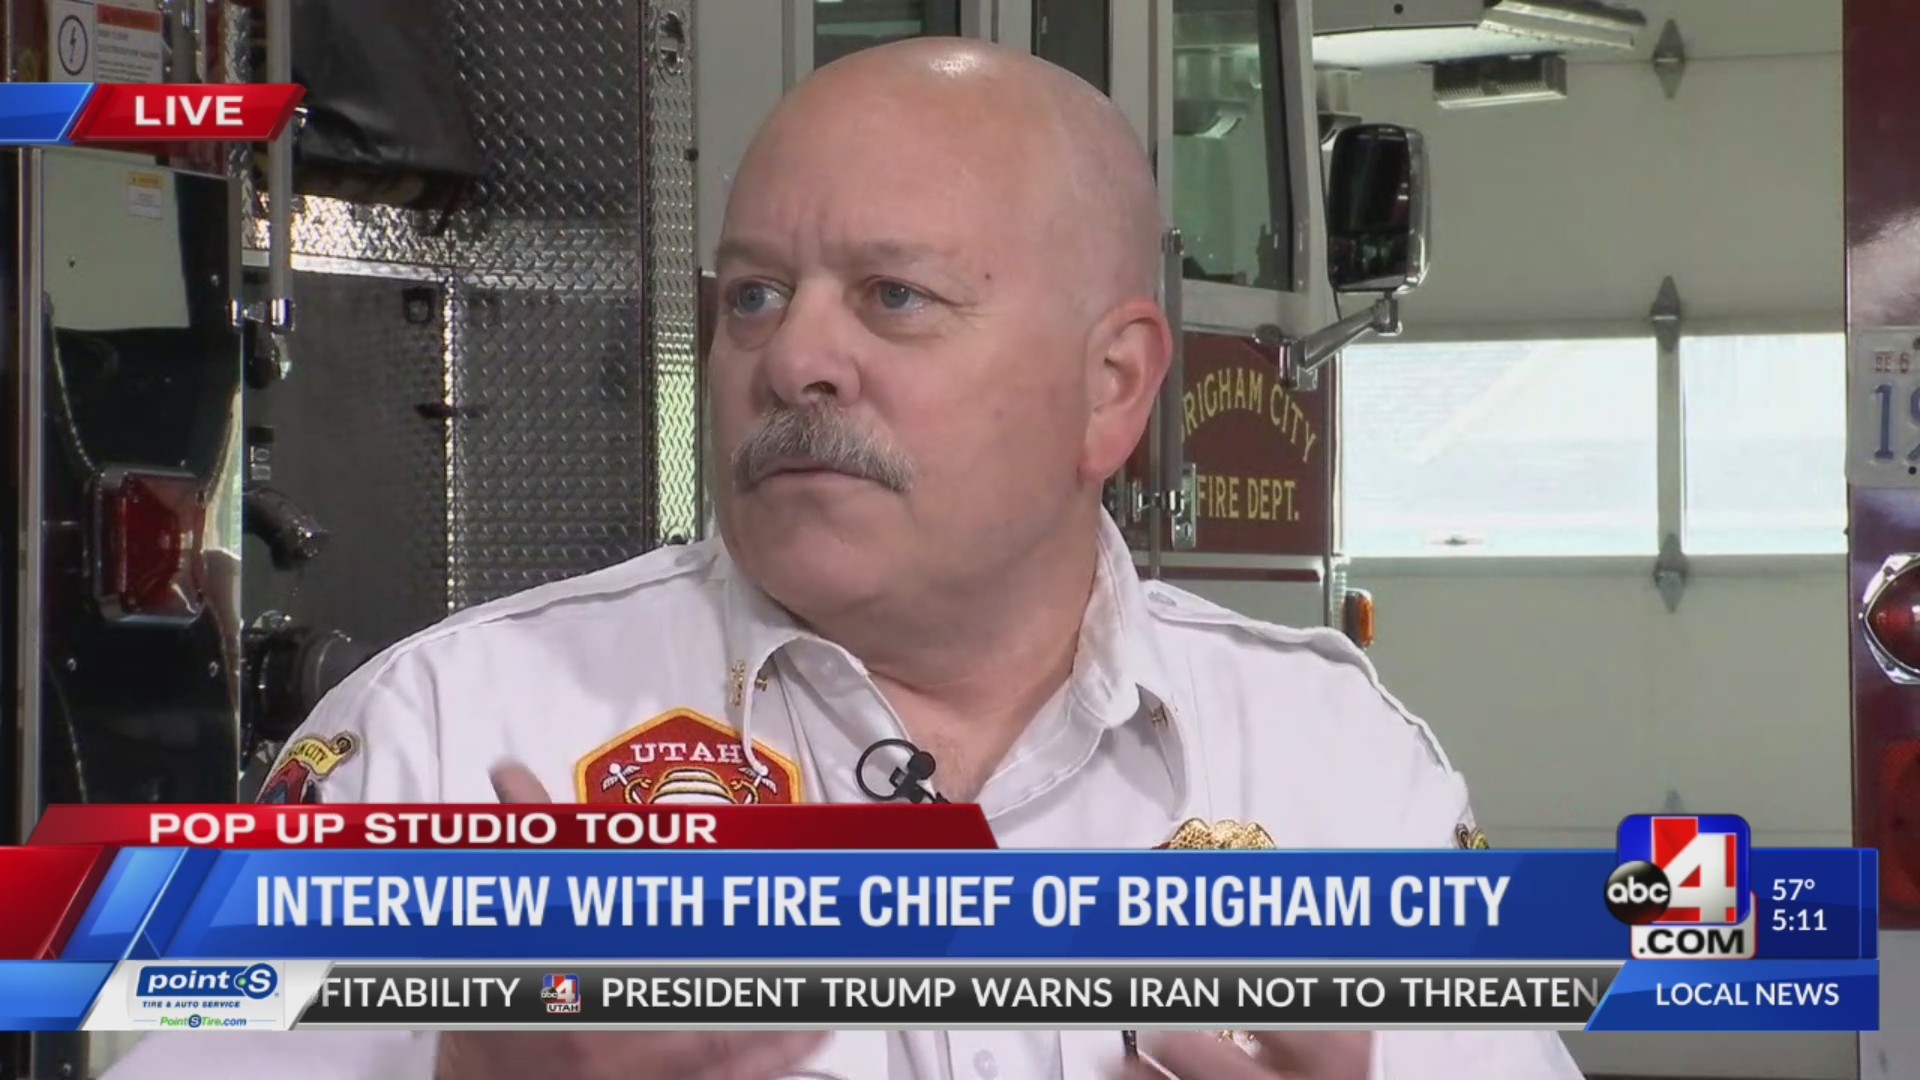 Interview with fire chief of Brigham City